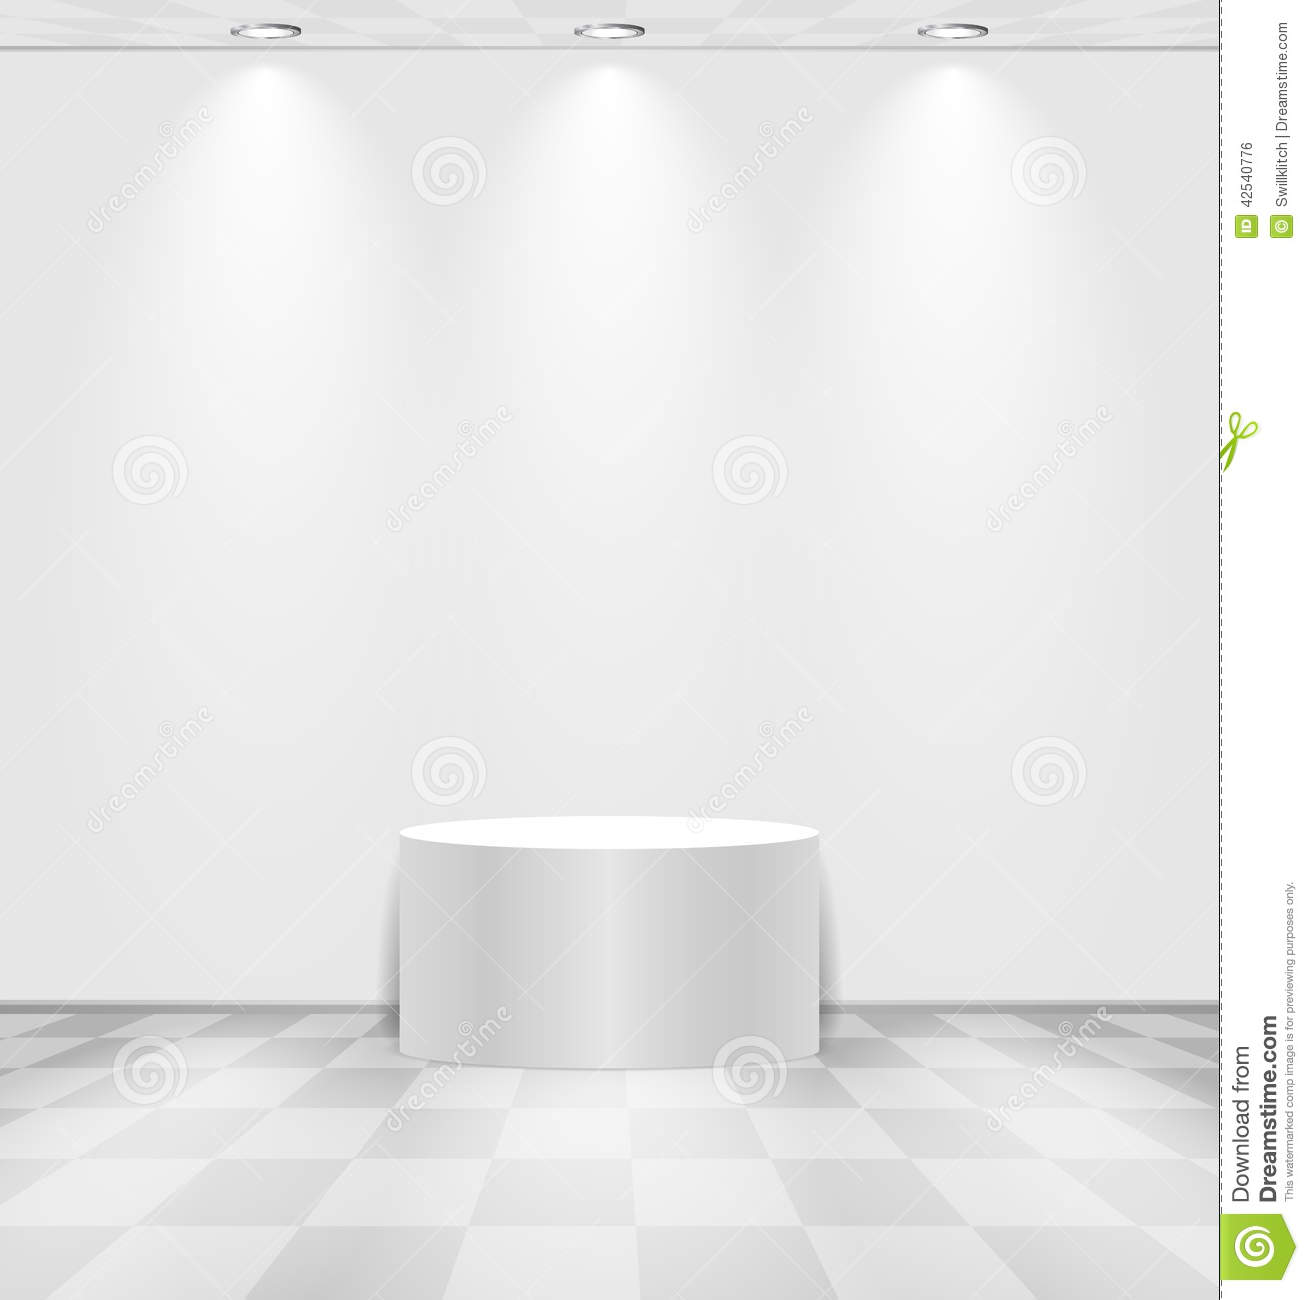 White Room With Round Stage Stock Vector Image 42540776